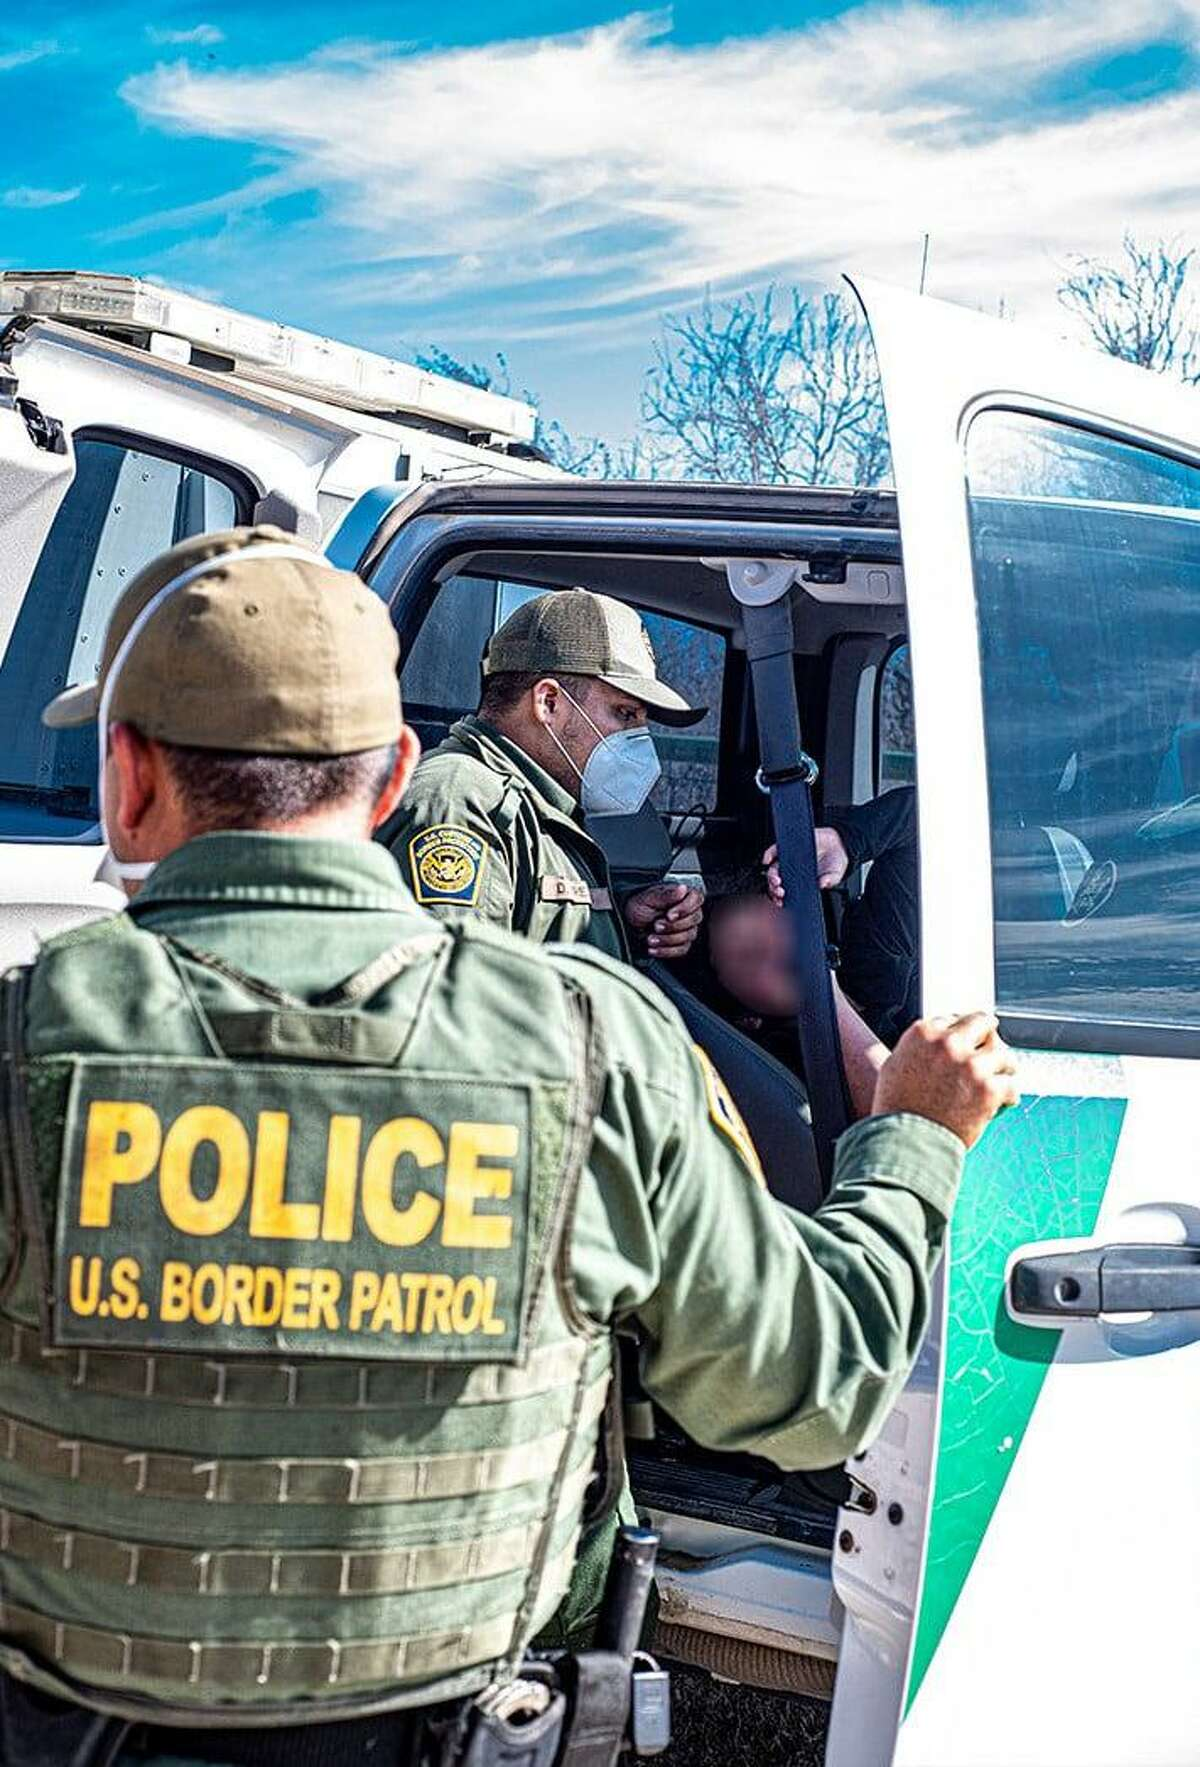 U.S. Border Patrol agents rendered aid to an immigrant who was suffering from dehydration and long exposure. She was found with a group of immigrants near Hebbronville.